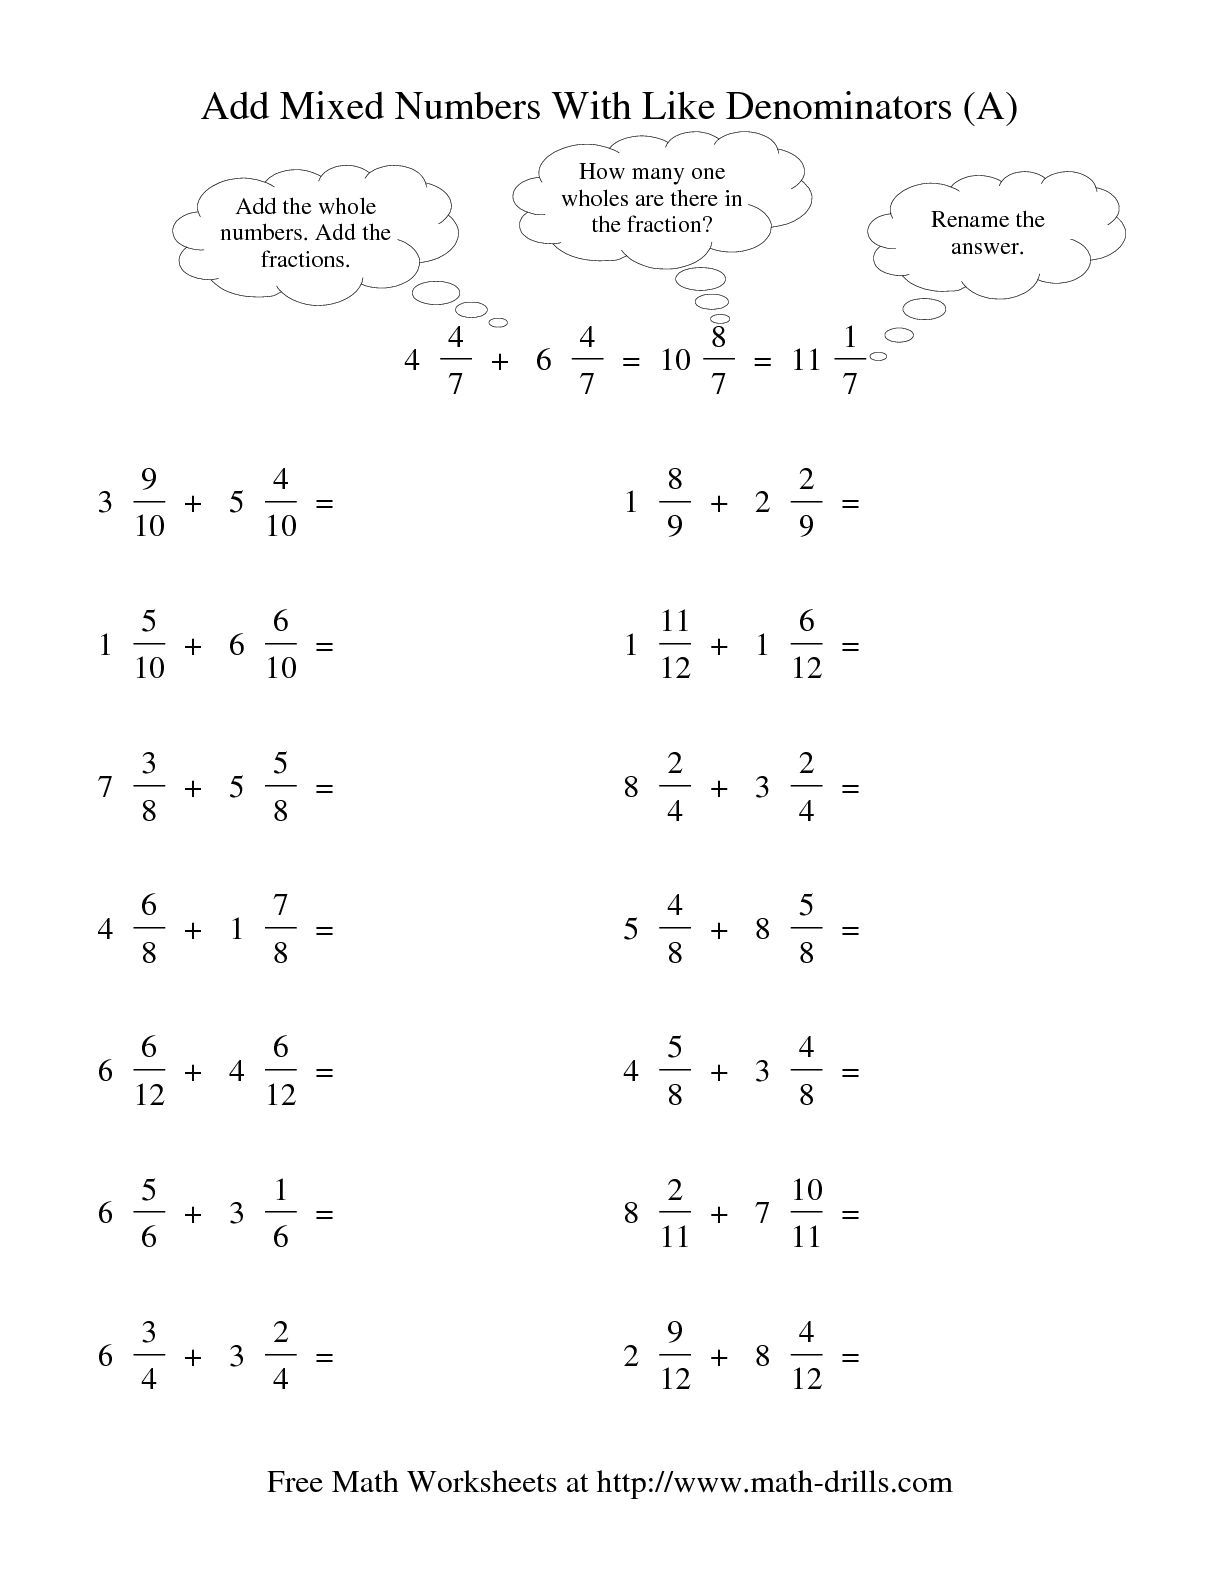 The Adding Mixed Fractions Like Denominators Renaming No Reducing A Fractions Worksheets Adding Mixed Fractions Fractions